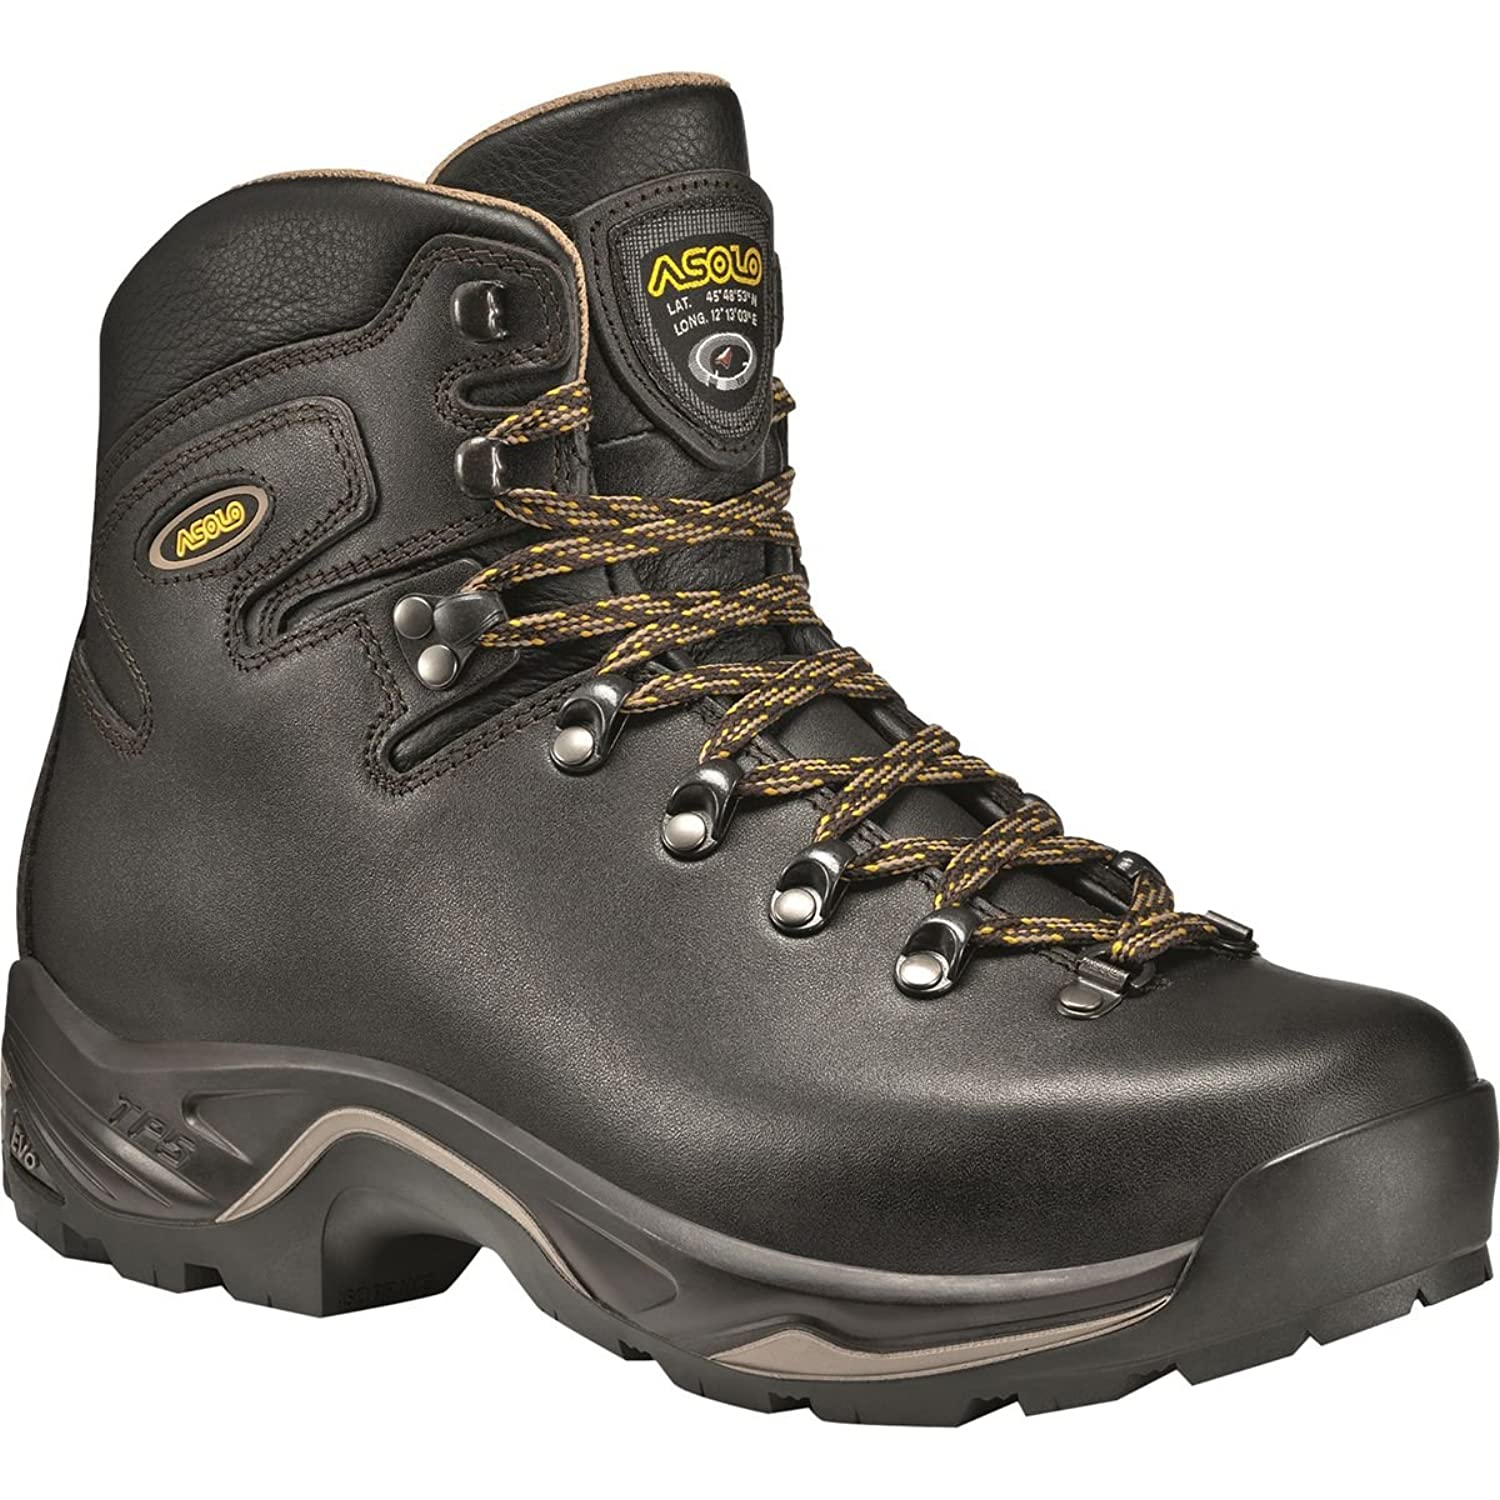 Asolo Men's TPS 535 LTH V Evo Hiking Boot